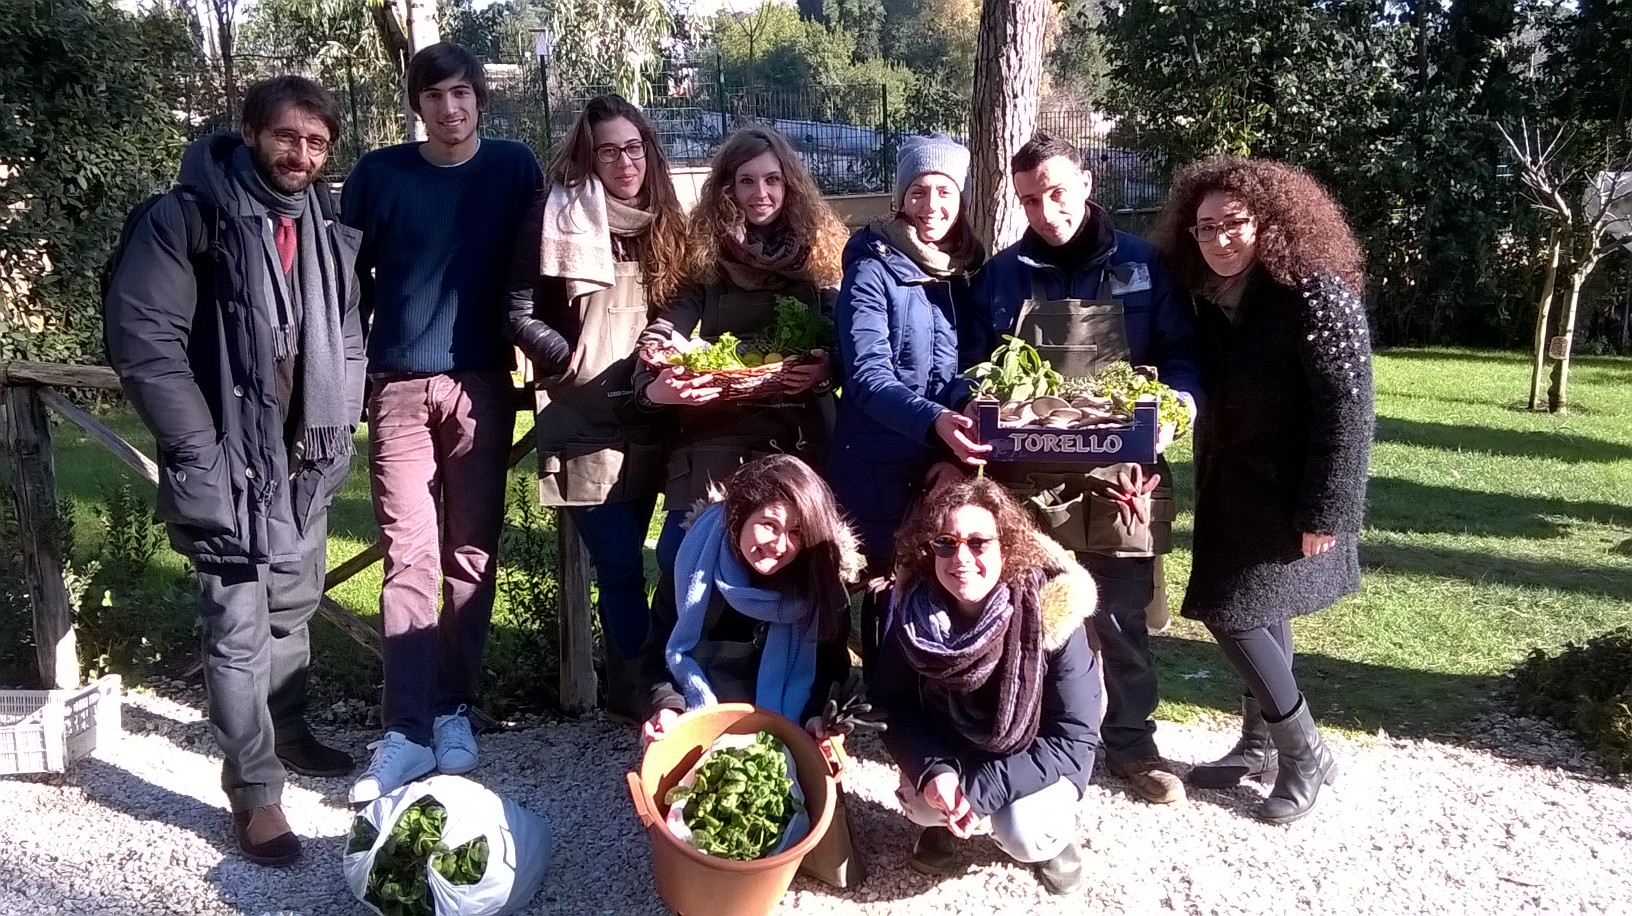 Luiss garden: the first harvest and the (re)discovering of the little joy of life.